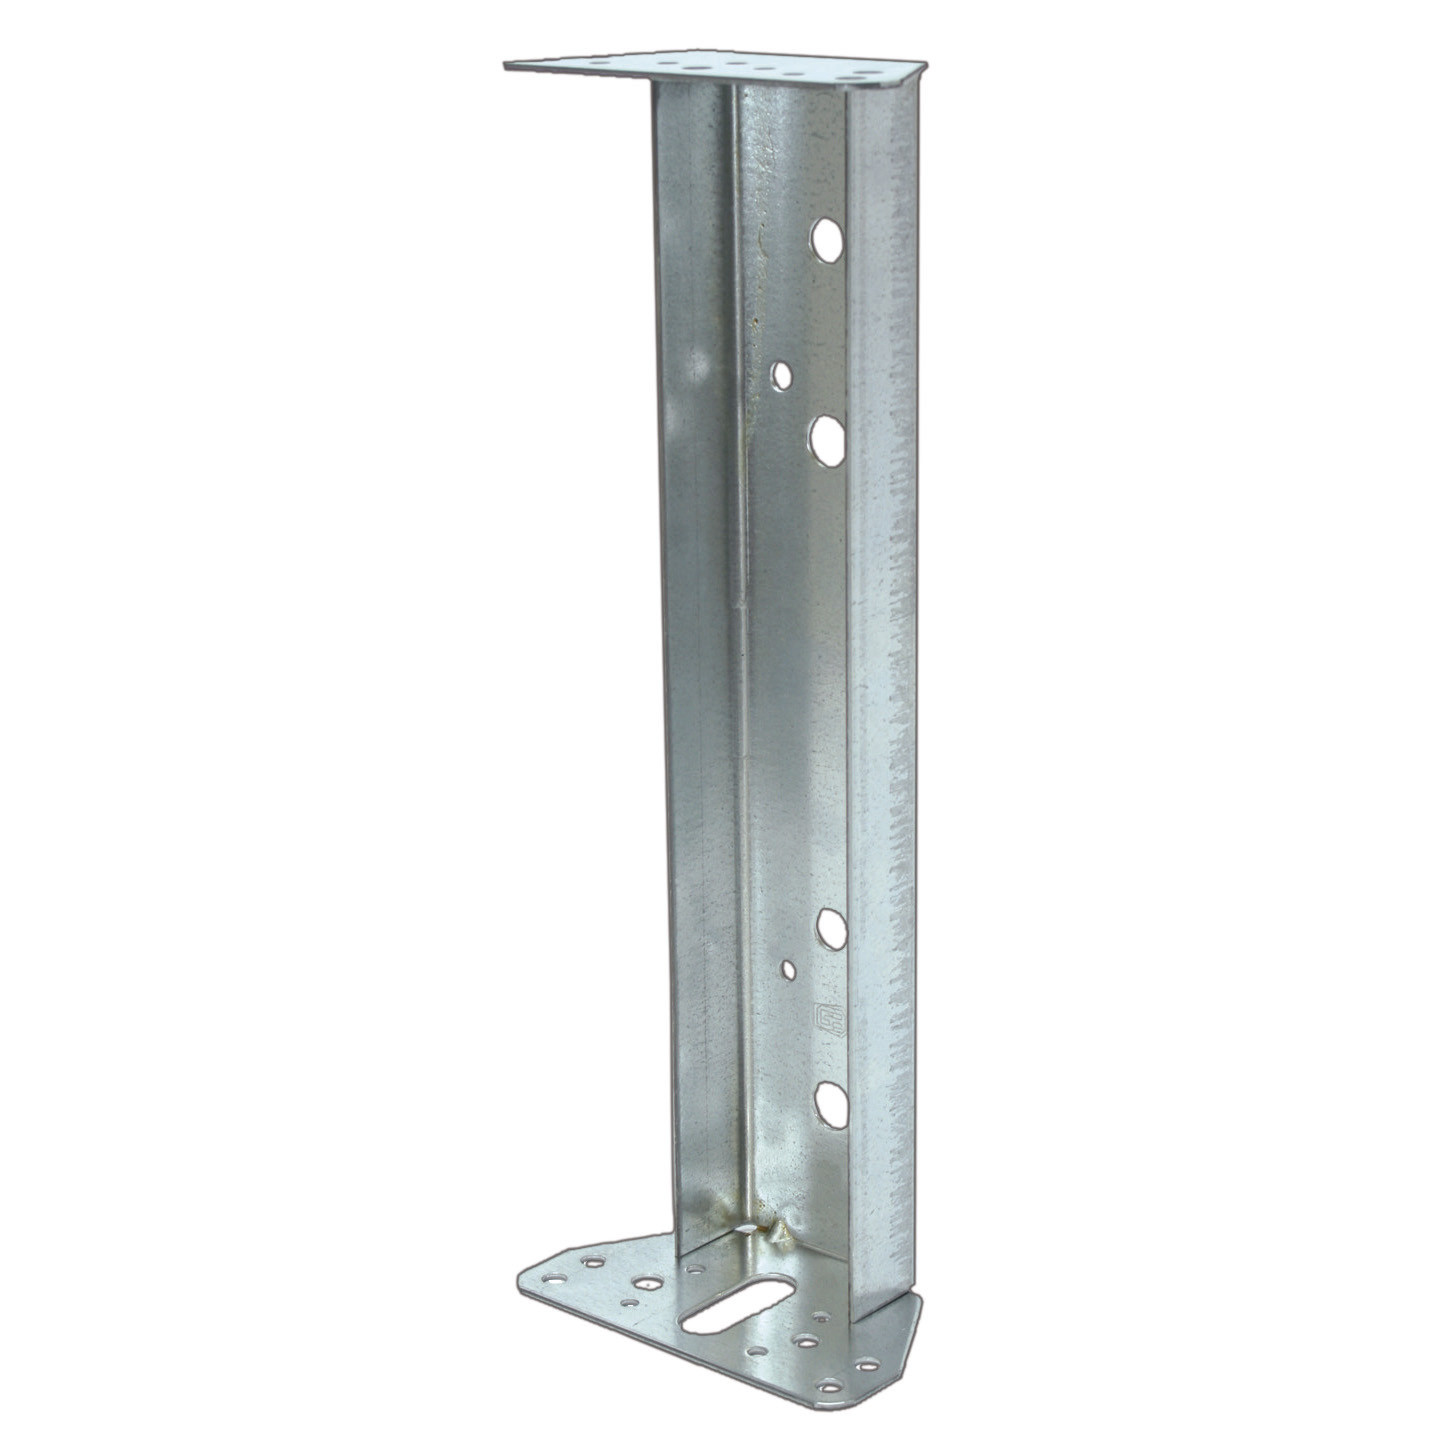 Window front frame support 60x70x300 115x2 304